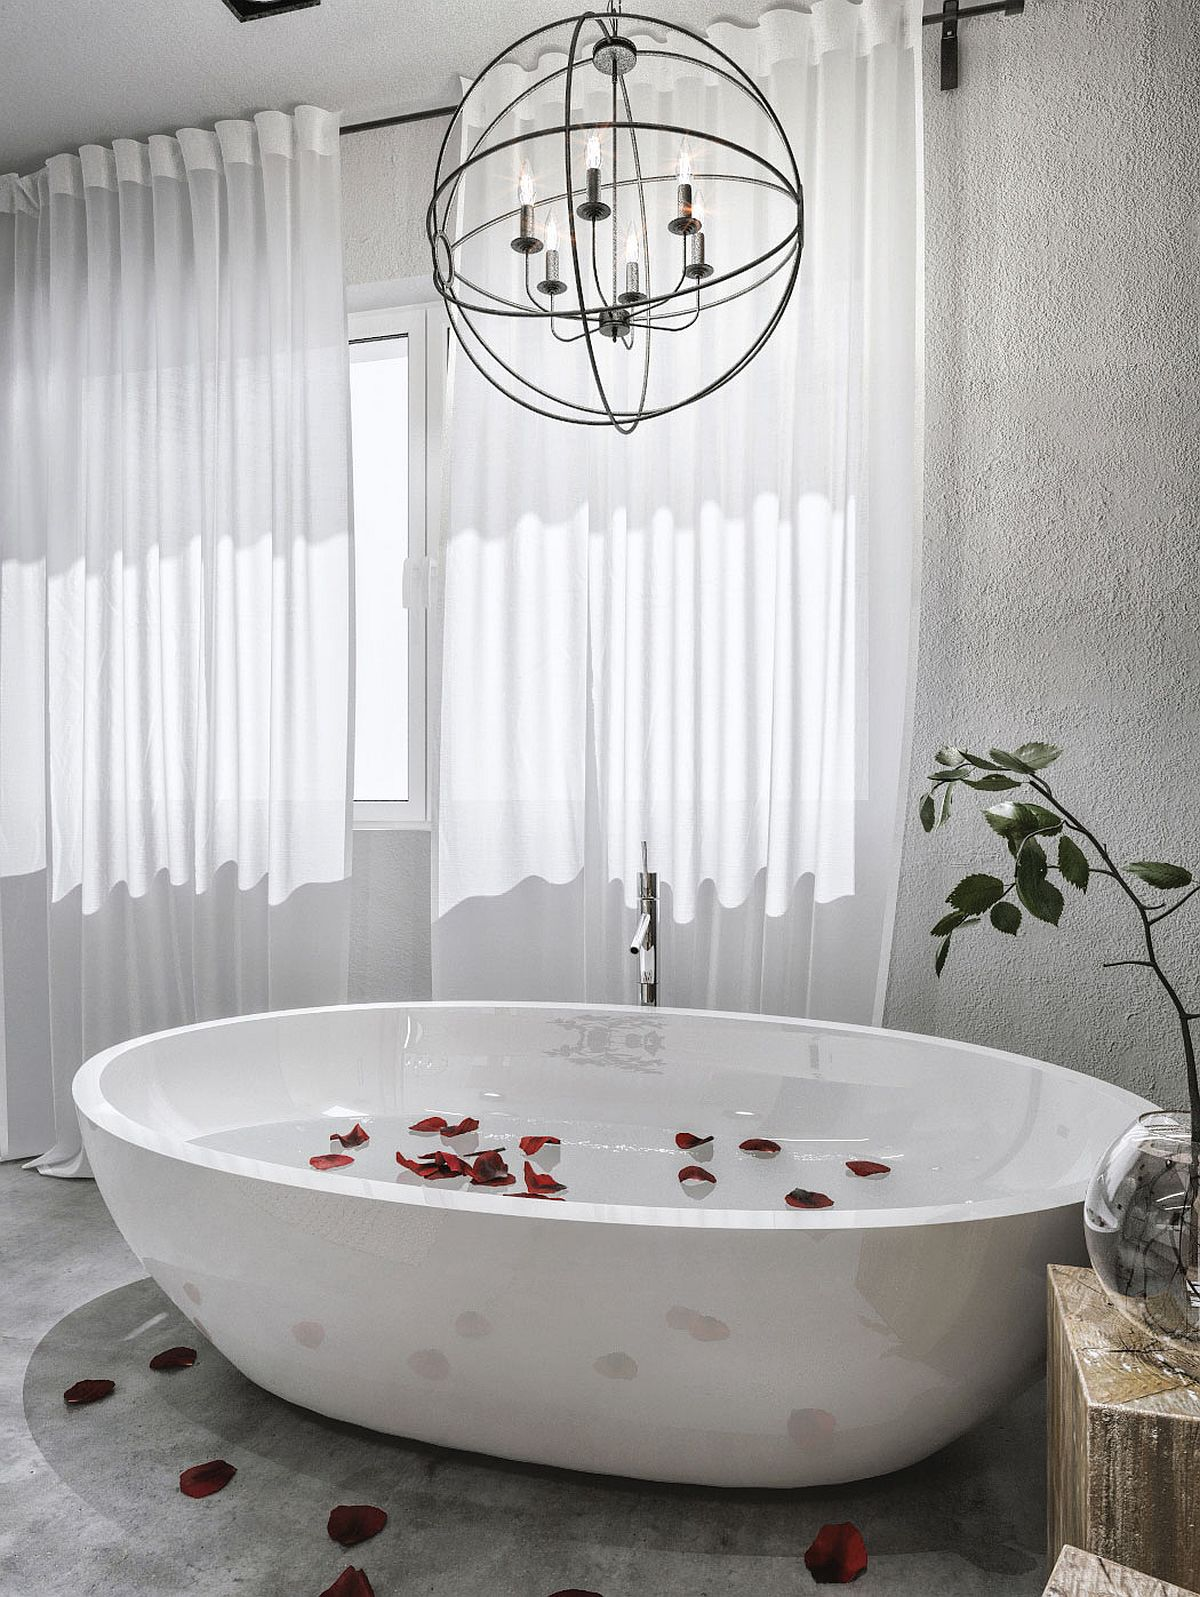 Candles and globes make a cool pendant above the luxurious bathtub